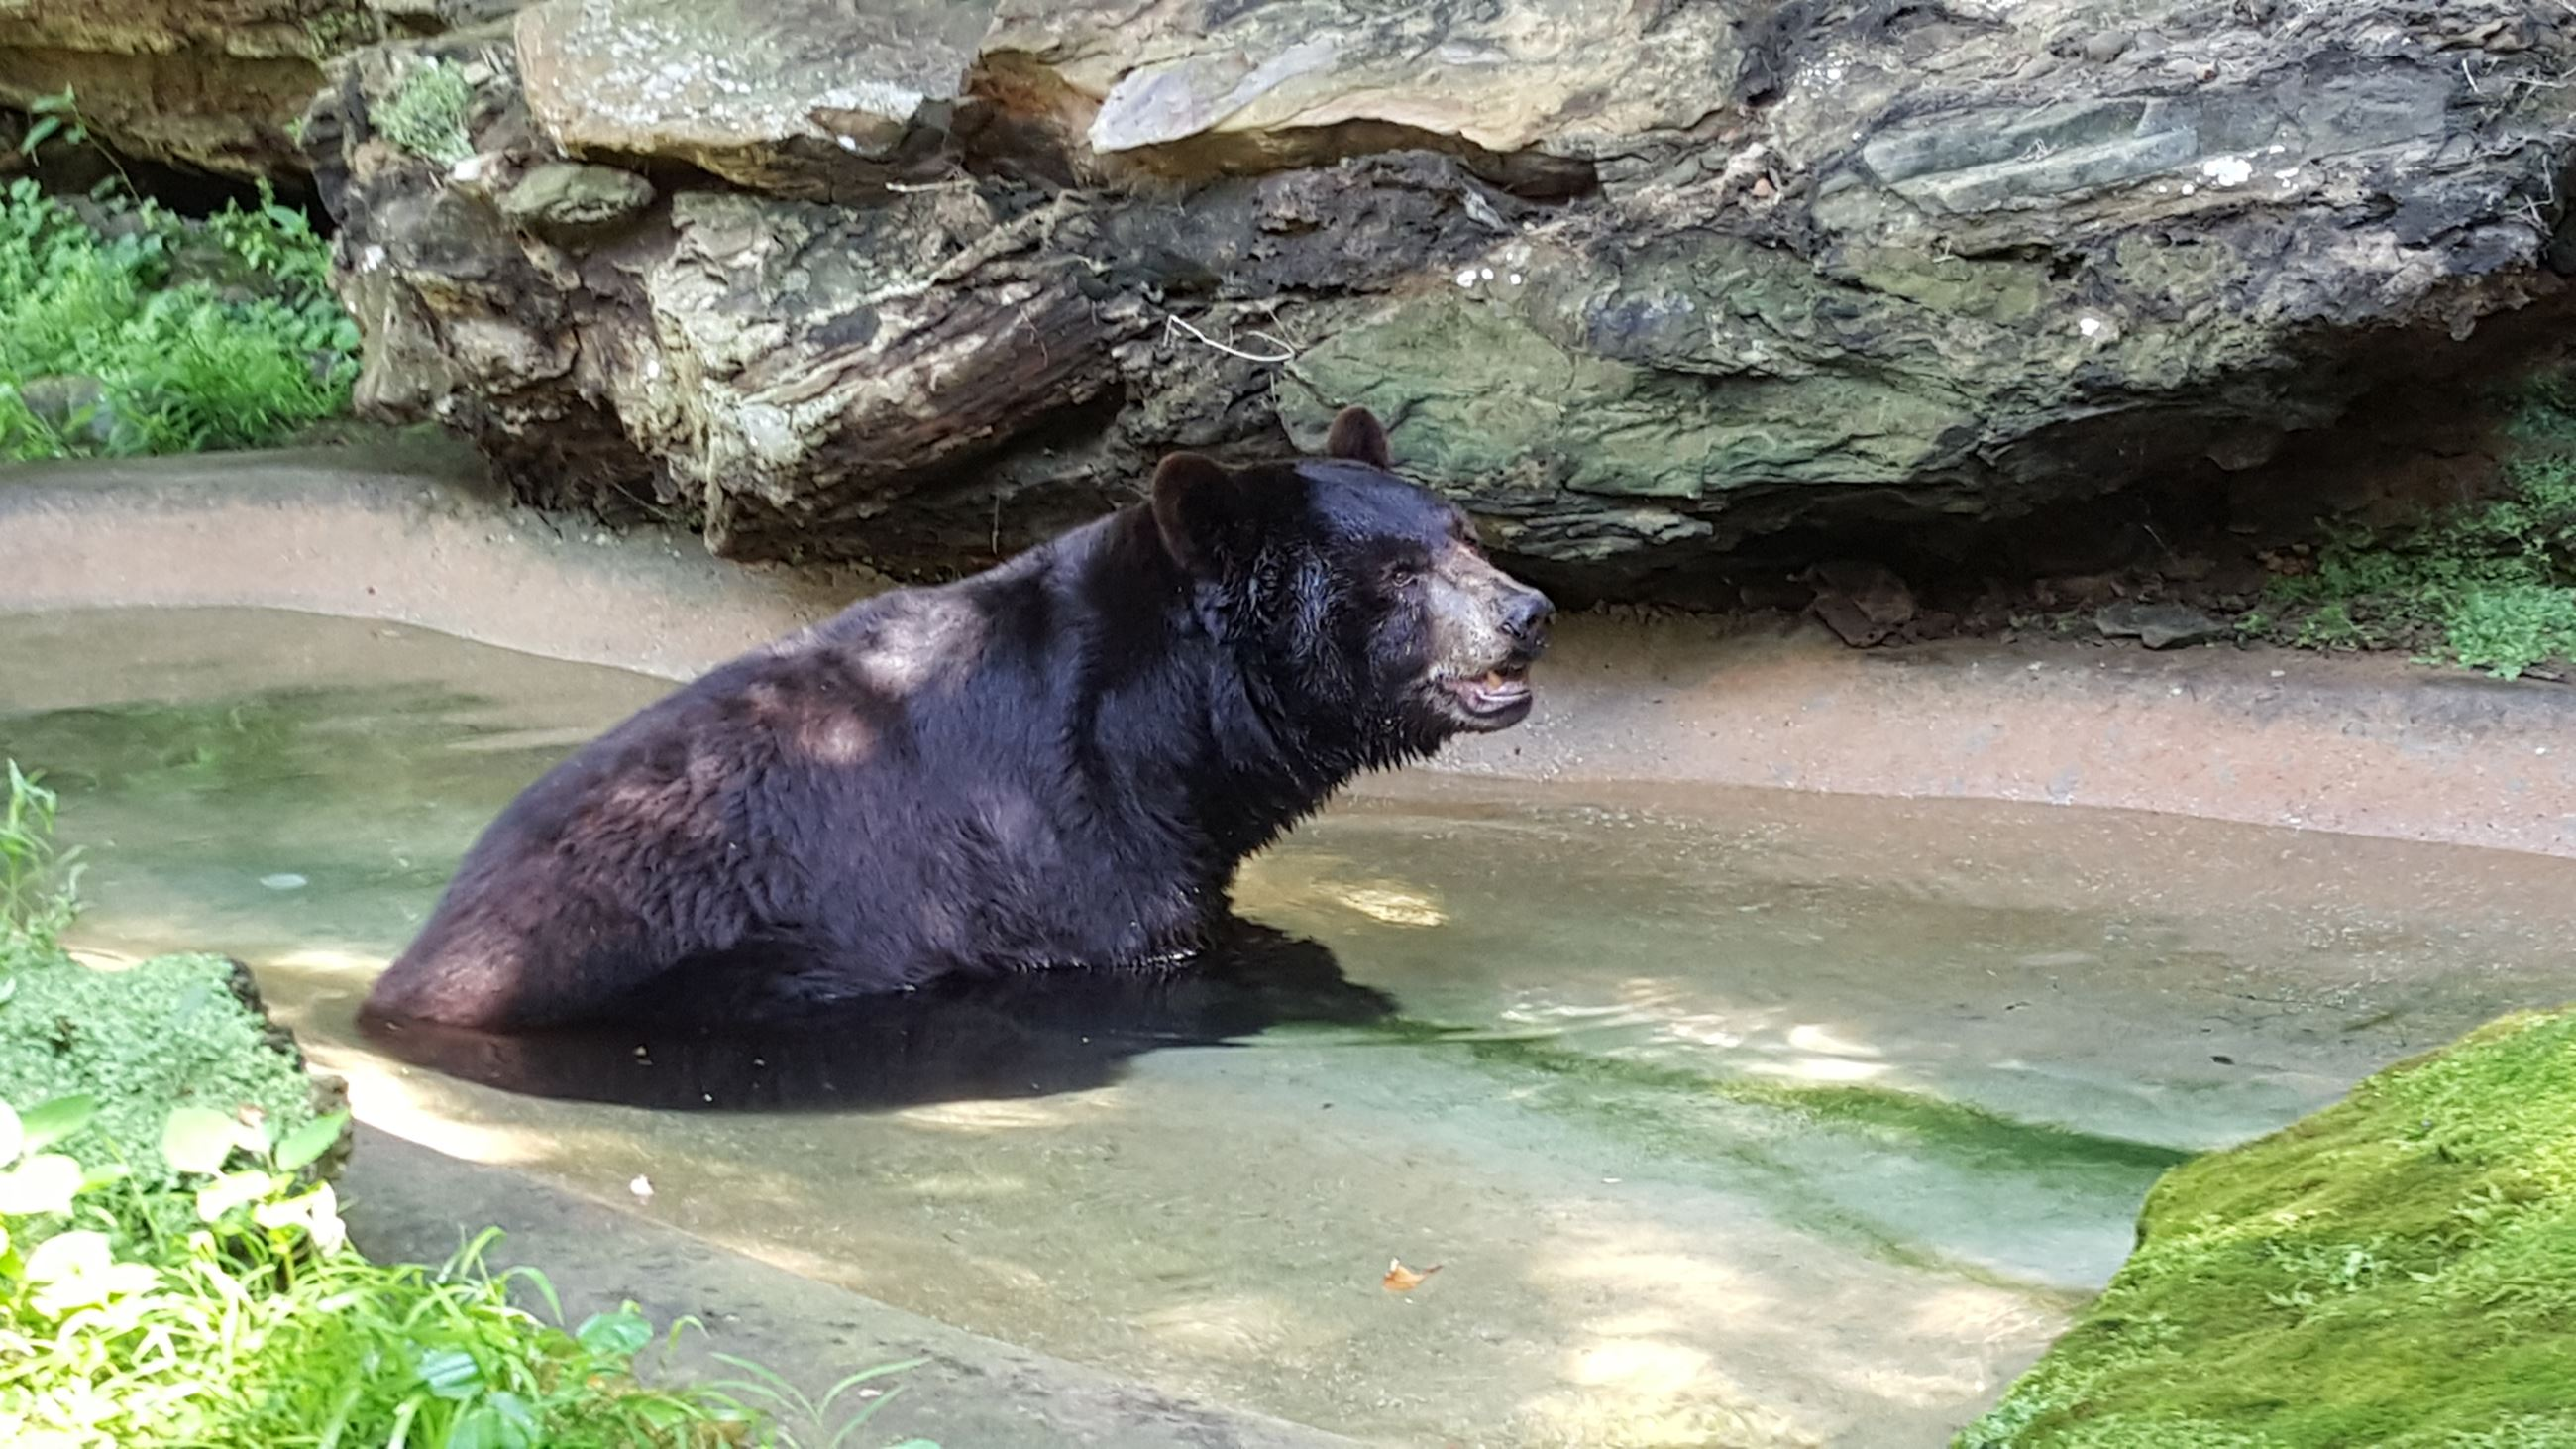 A black bear swimming in a pond.